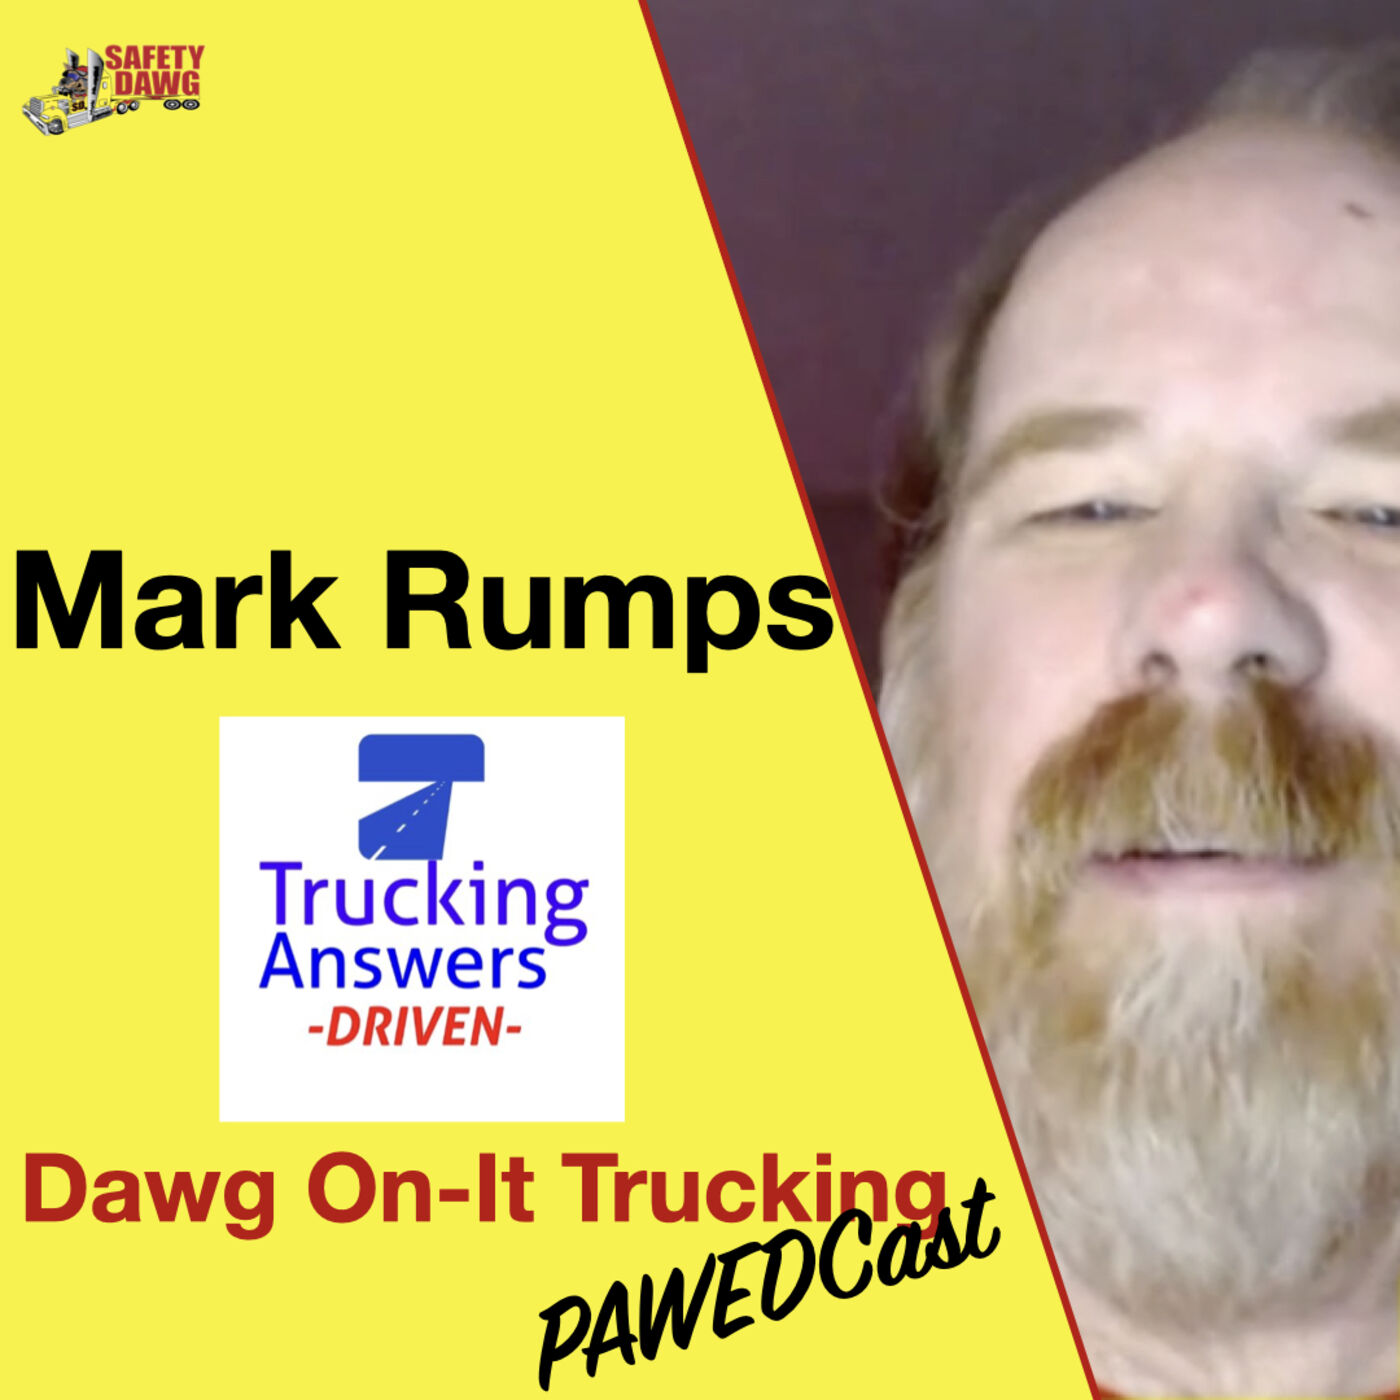 17. Mark of Trucking Answers